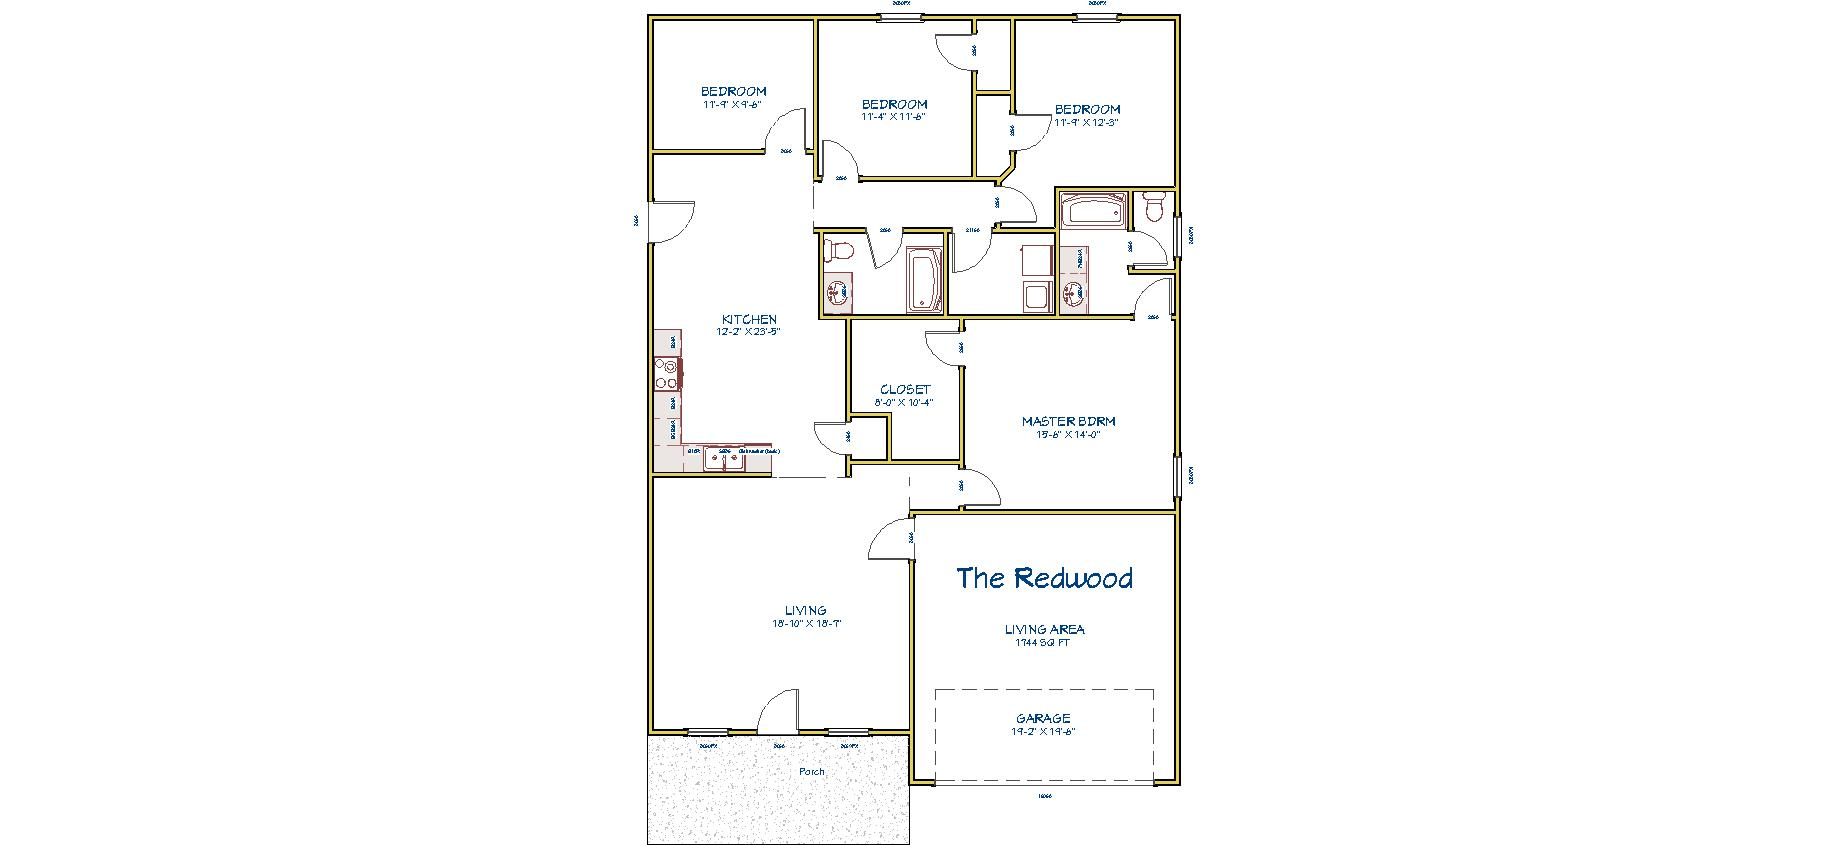 4 Bedrooms   split plan 2 Baths Kitchen Dining Combo Eating Bar open to  Living Area Large Master Bedroom with Walk in closet. The Redwood   Pankratz Construction